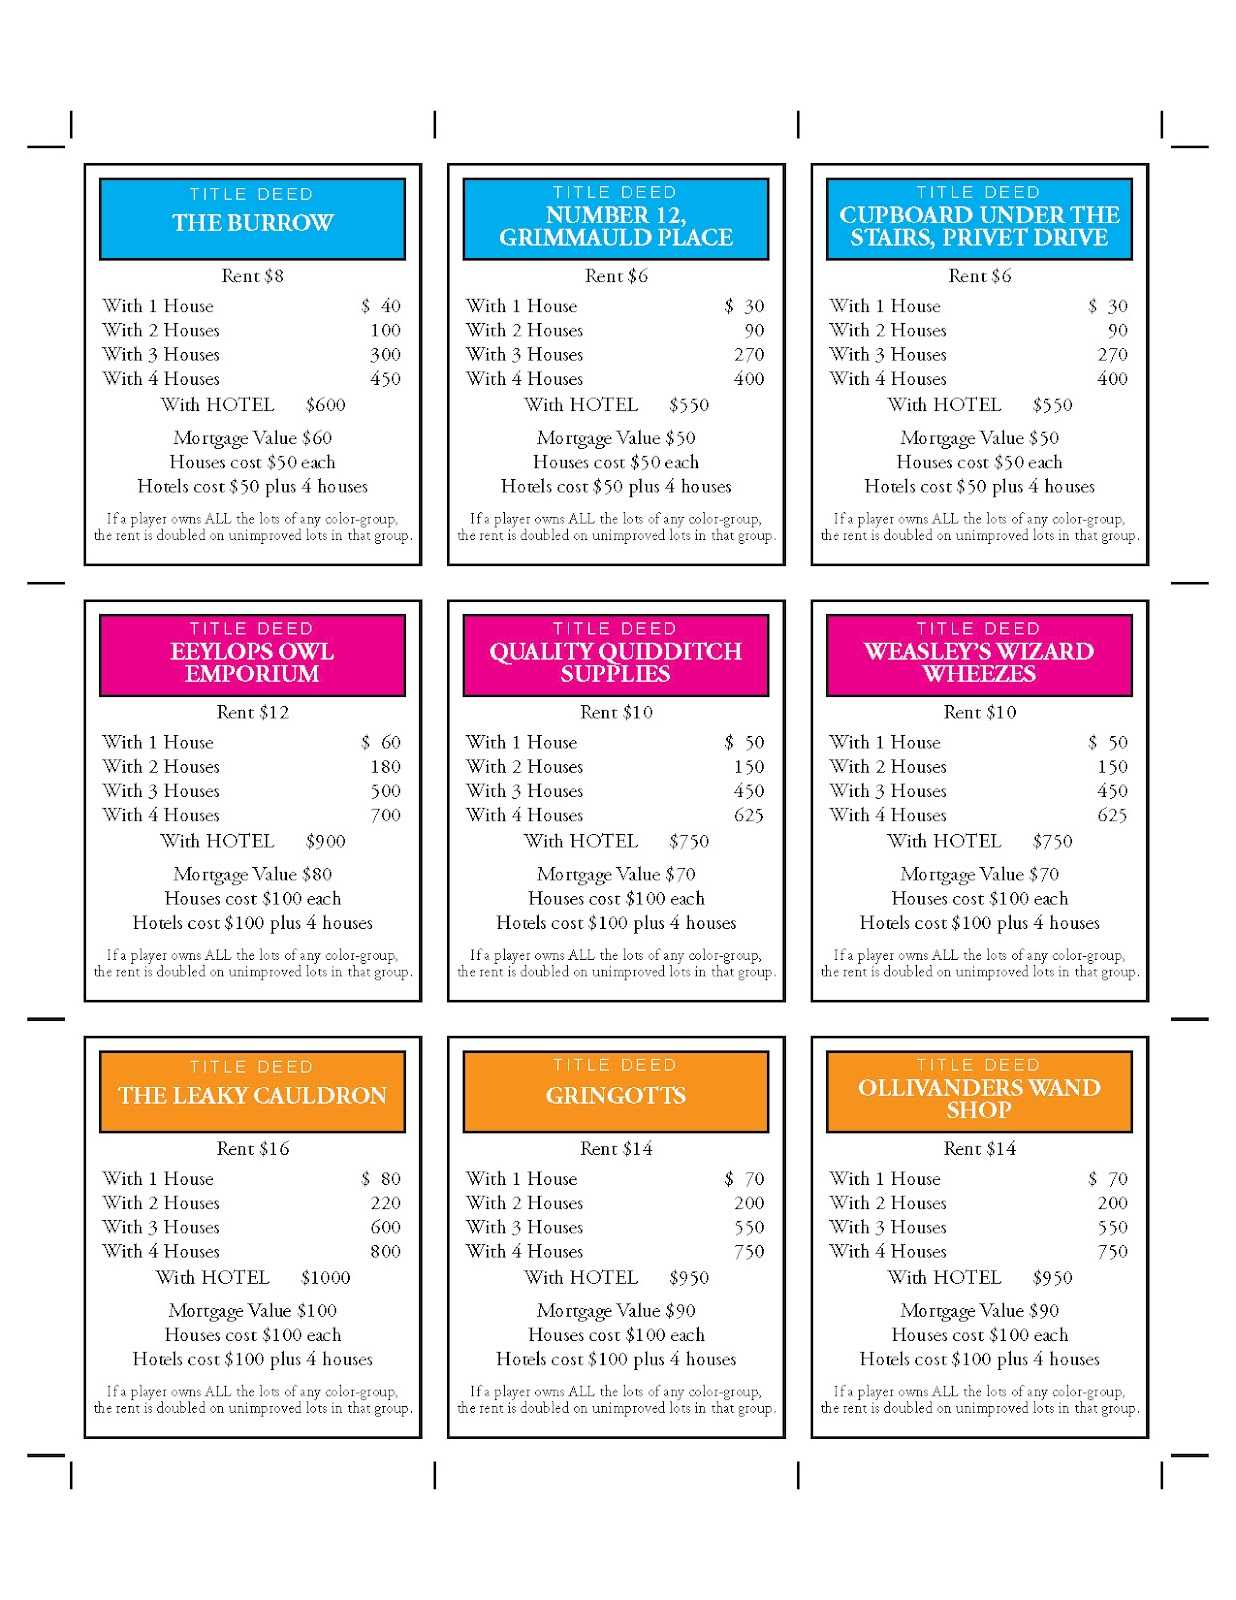 Design + Technology Education: How To Make Harry Potter Monopoly Pertaining To Monopoly Property Card Template